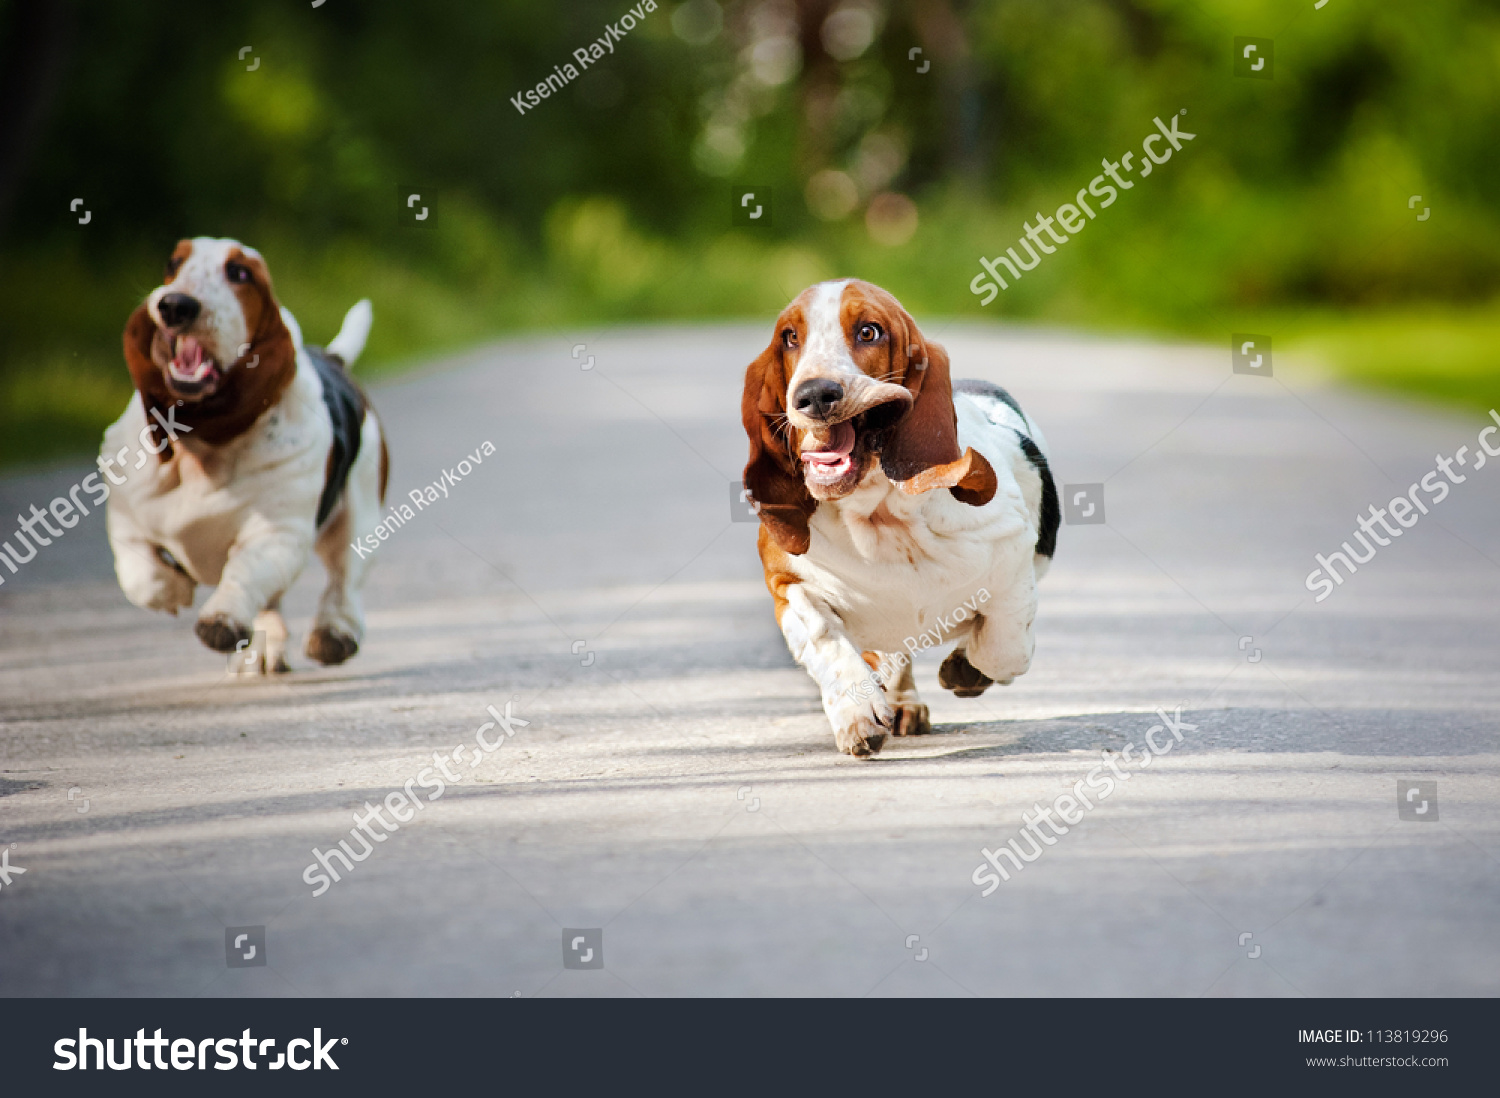 Cute Funny Dogs Basset Hound Running On The Road Stock